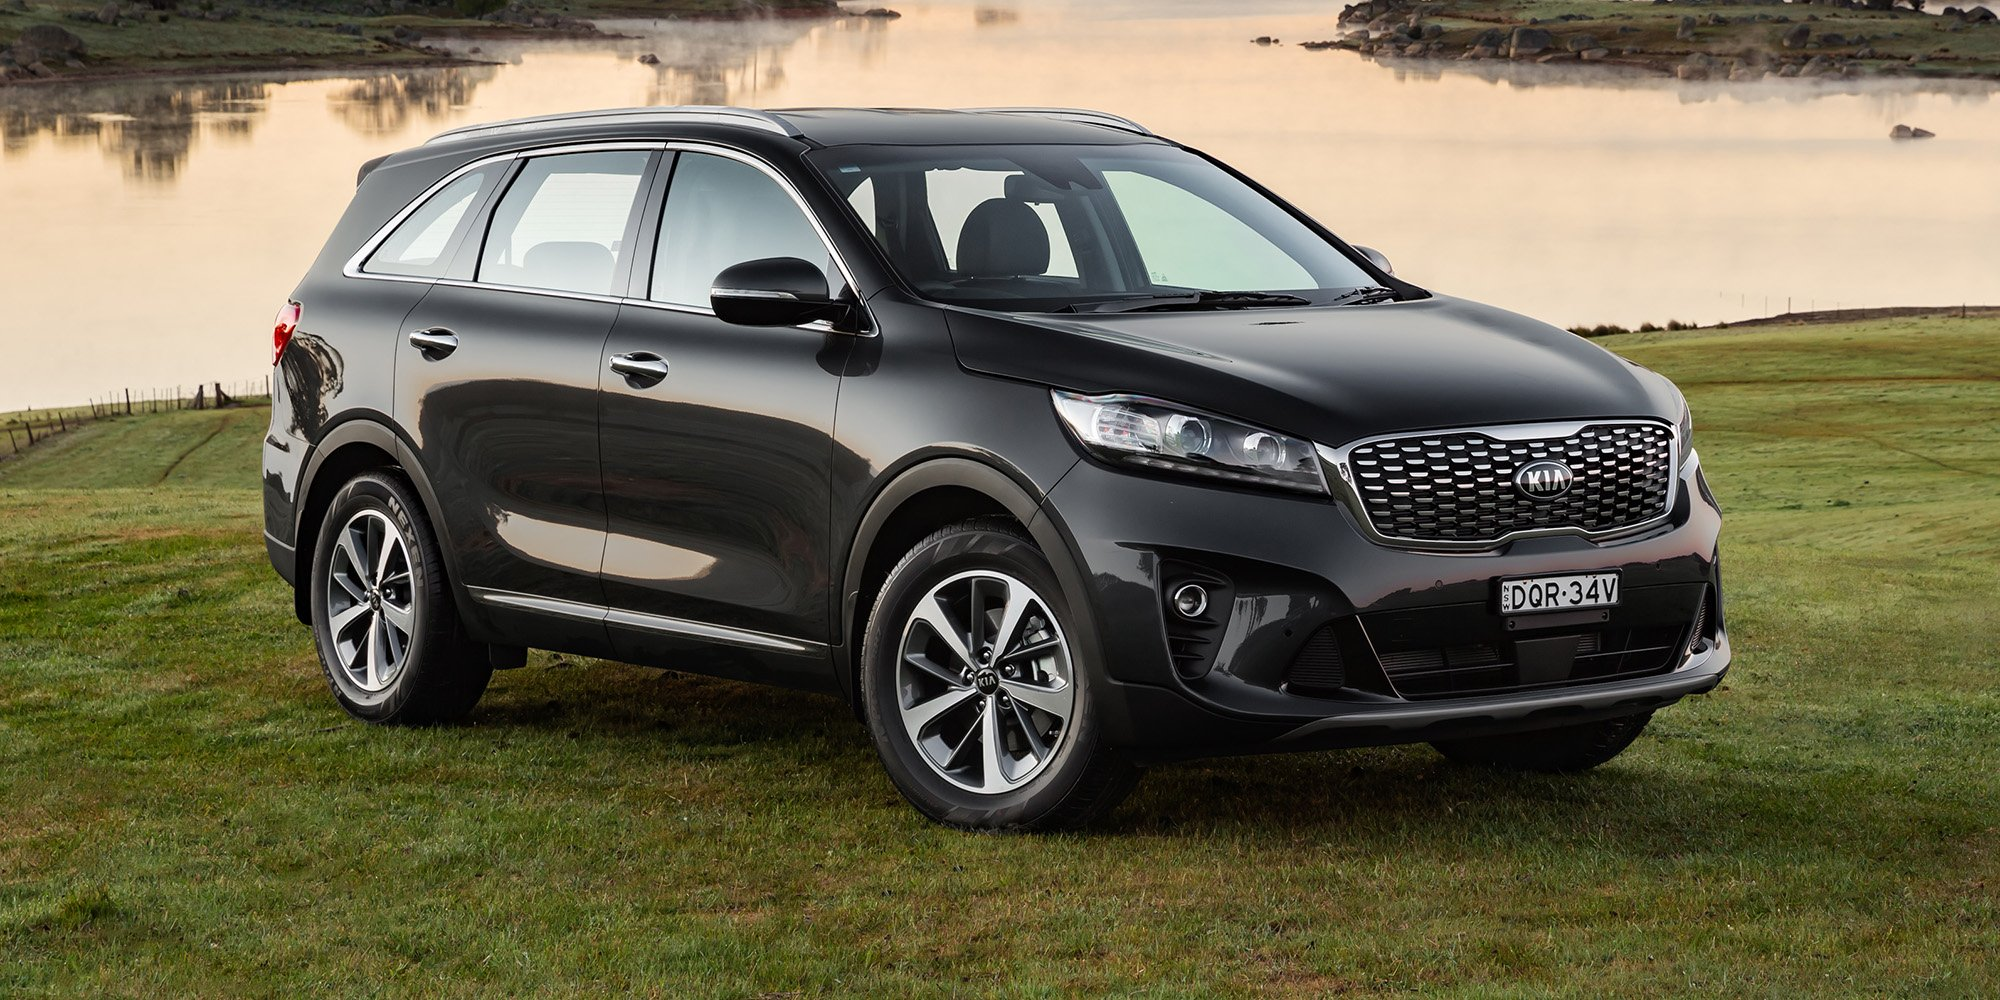 2018 kia sorento pricing and specs photos 1 of 23. Black Bedroom Furniture Sets. Home Design Ideas